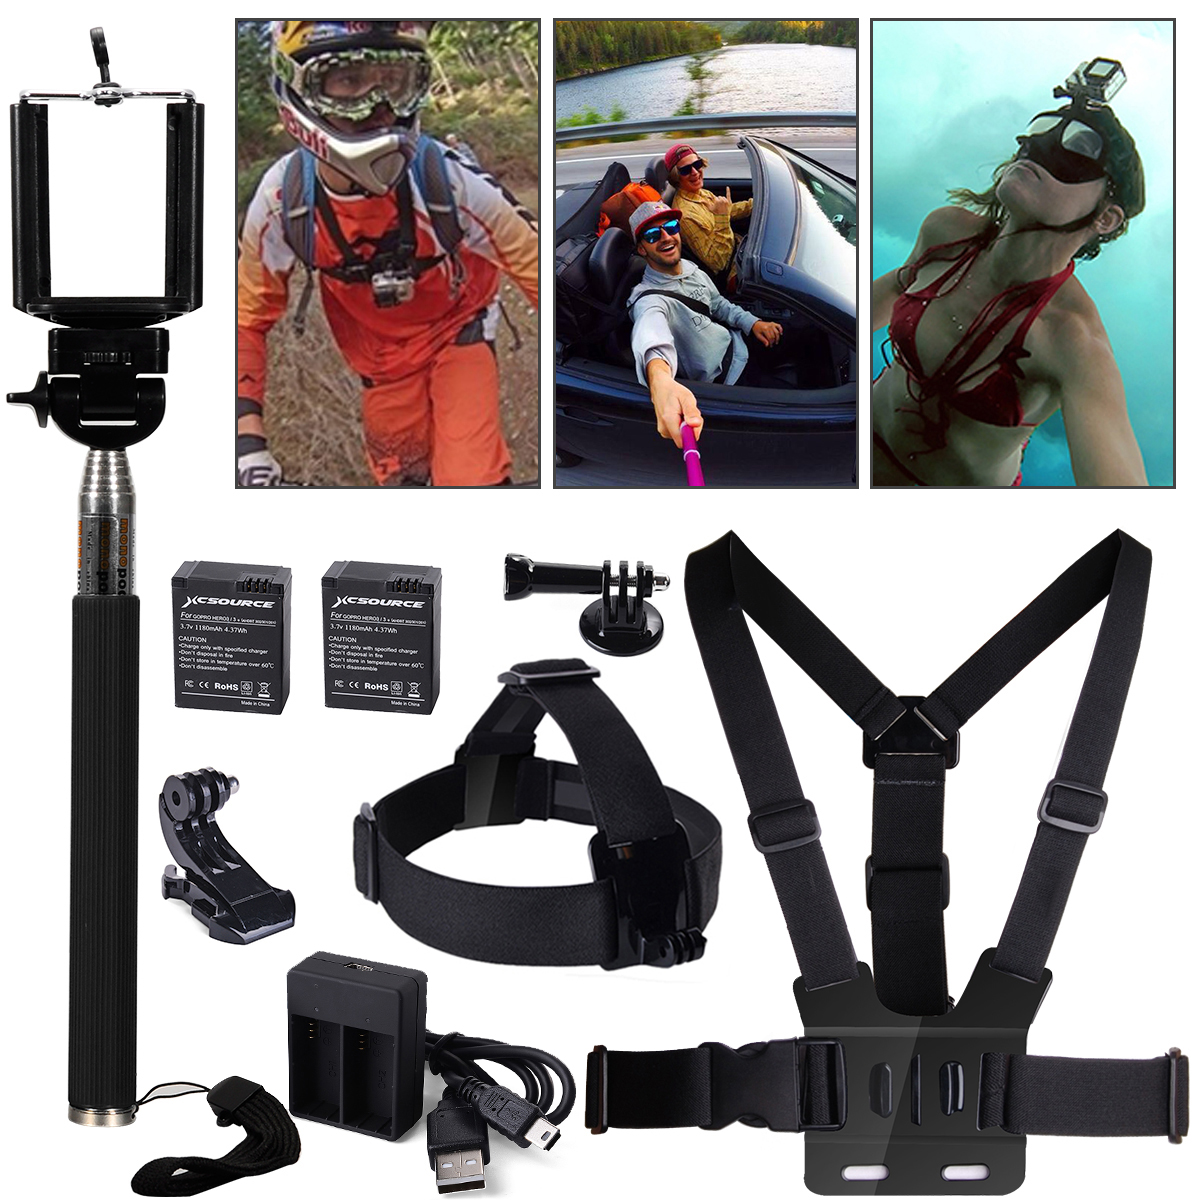 10in1 Accessories Kit Head Chest Mount Bettery Charger Monopod For GoPro 1 2 3 4 Camera OS233(China (Mainland))